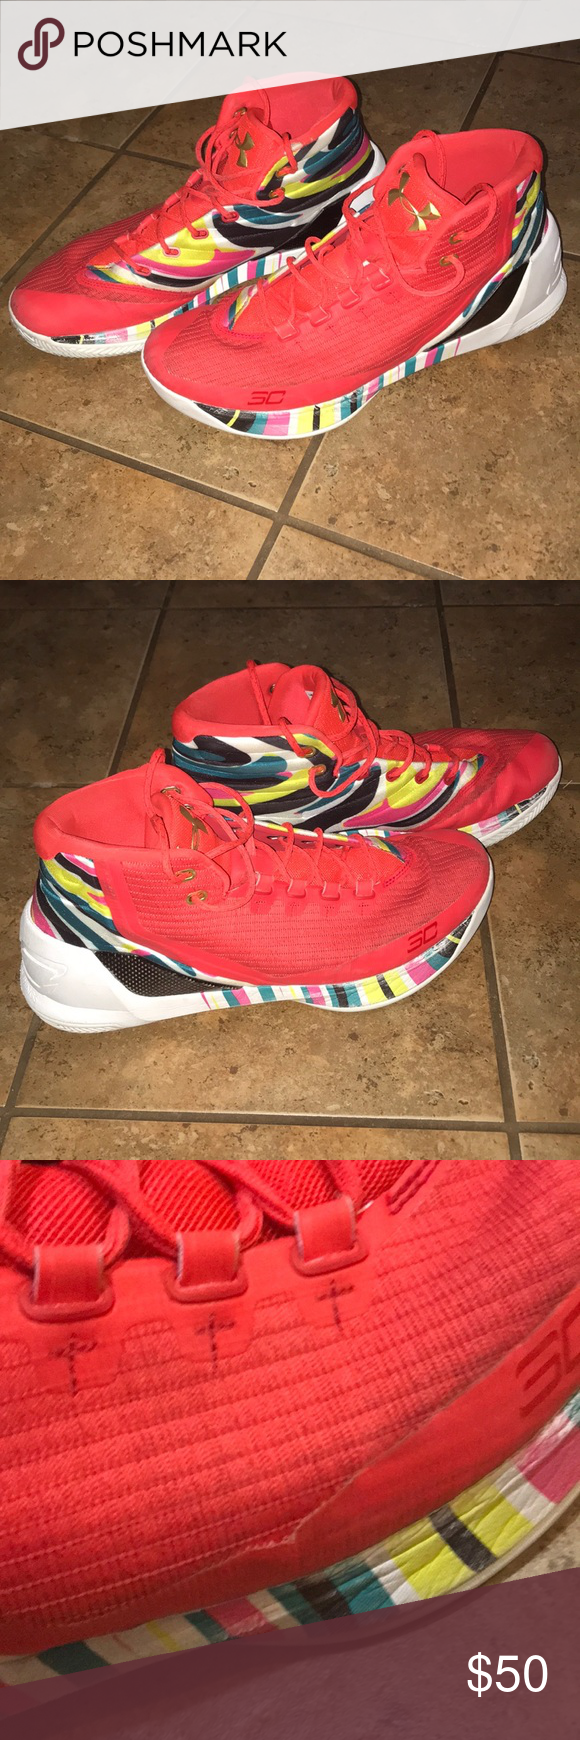 b36c82056760 Under Armour UA Steph Curry 3 Chinese New Year CNY Under Armour UA Steph  Curry 3